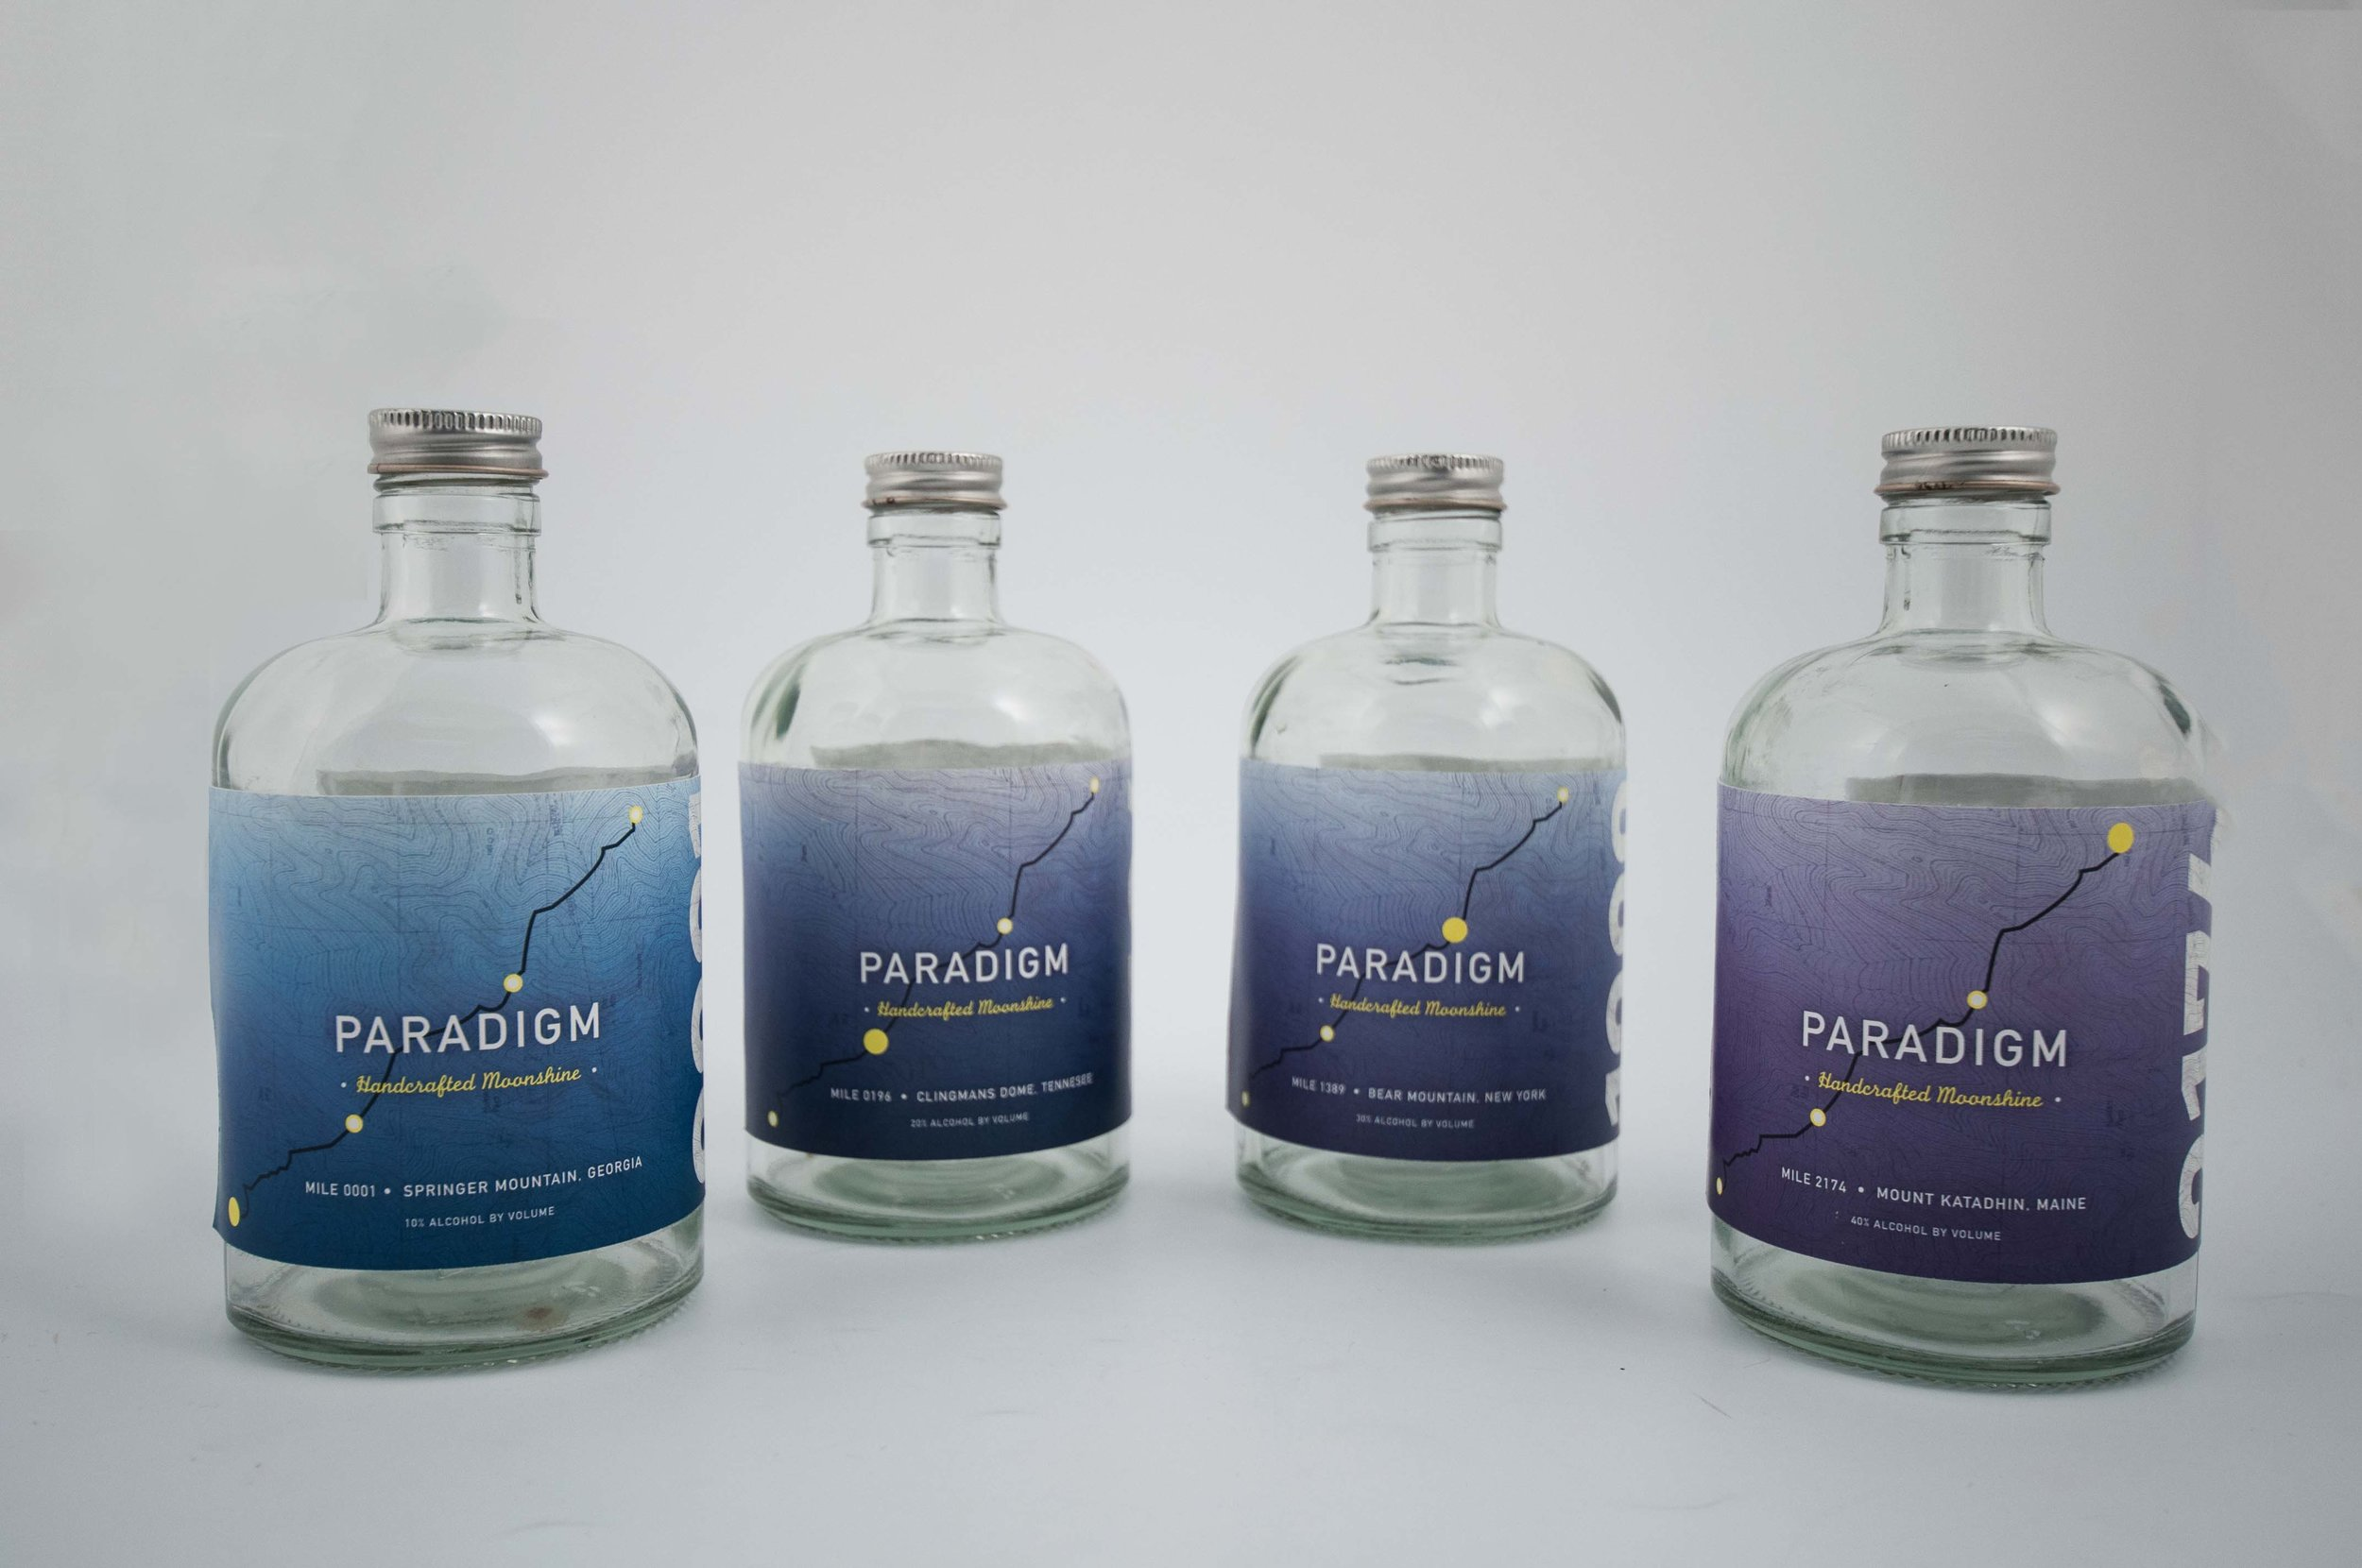 Colleen Goldhorn Photography and Design – Paradigm Moonshine